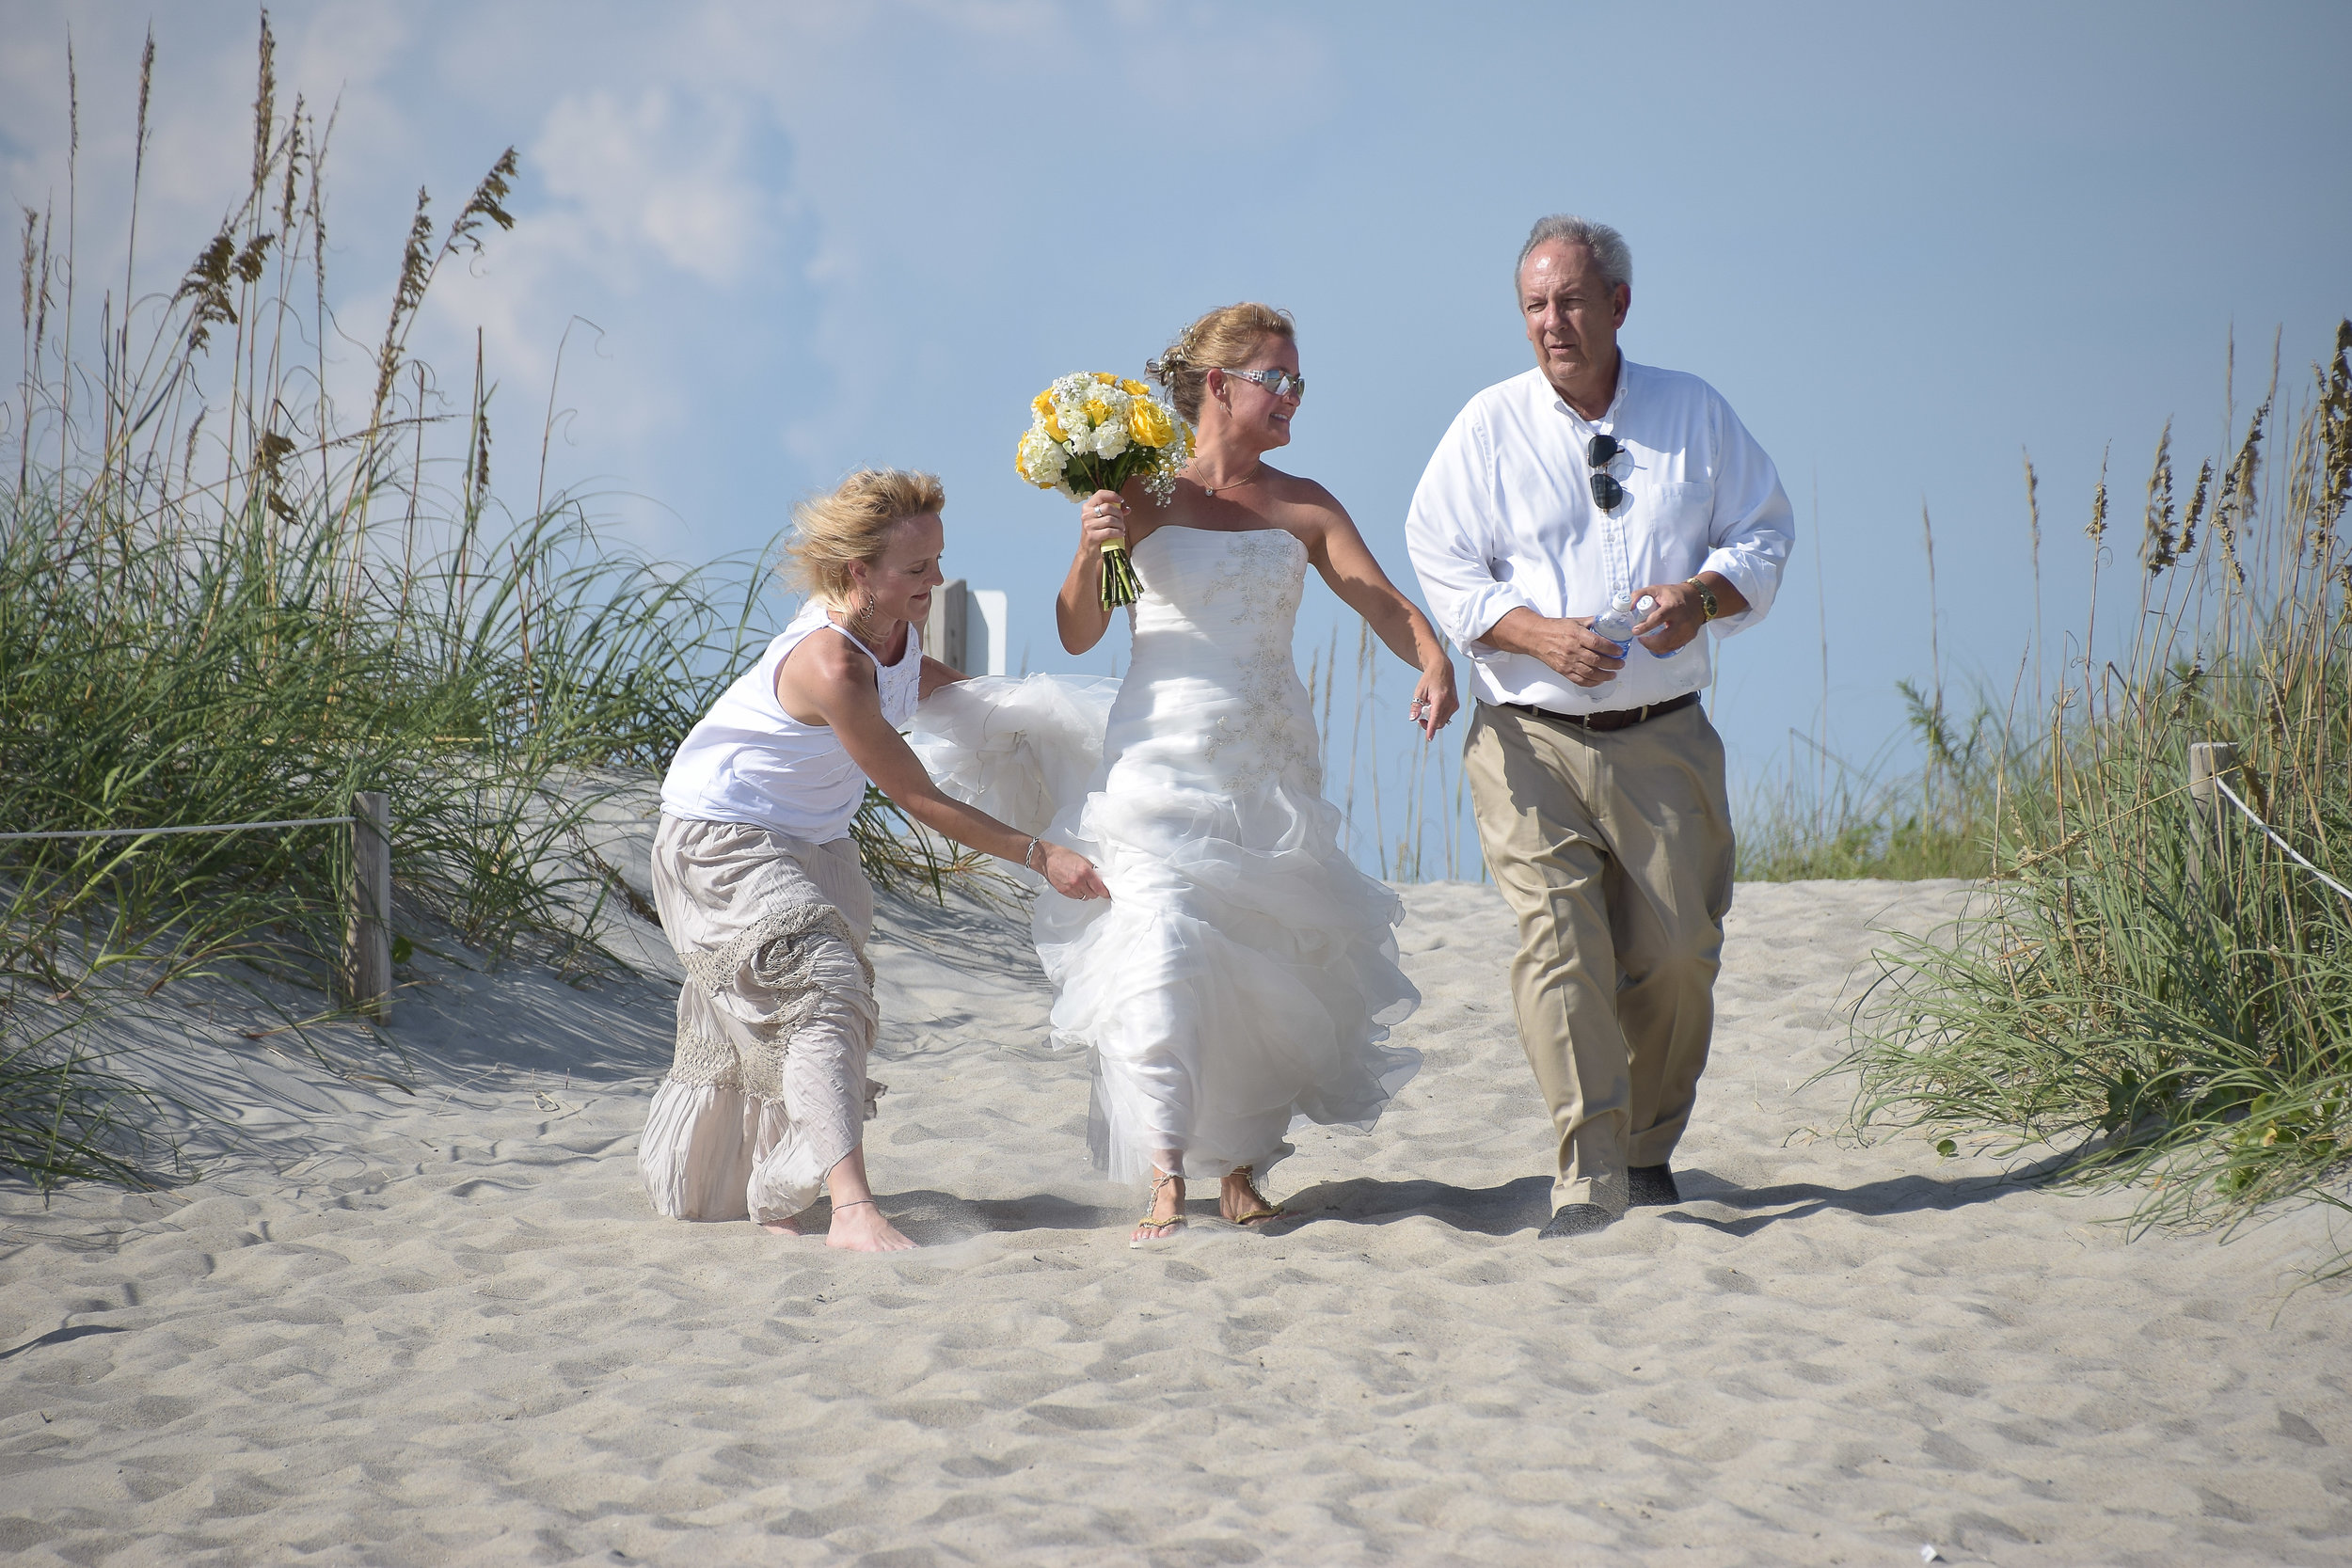 Bride walking down the aisle with dad while bridesmaid tries to fix her dress.